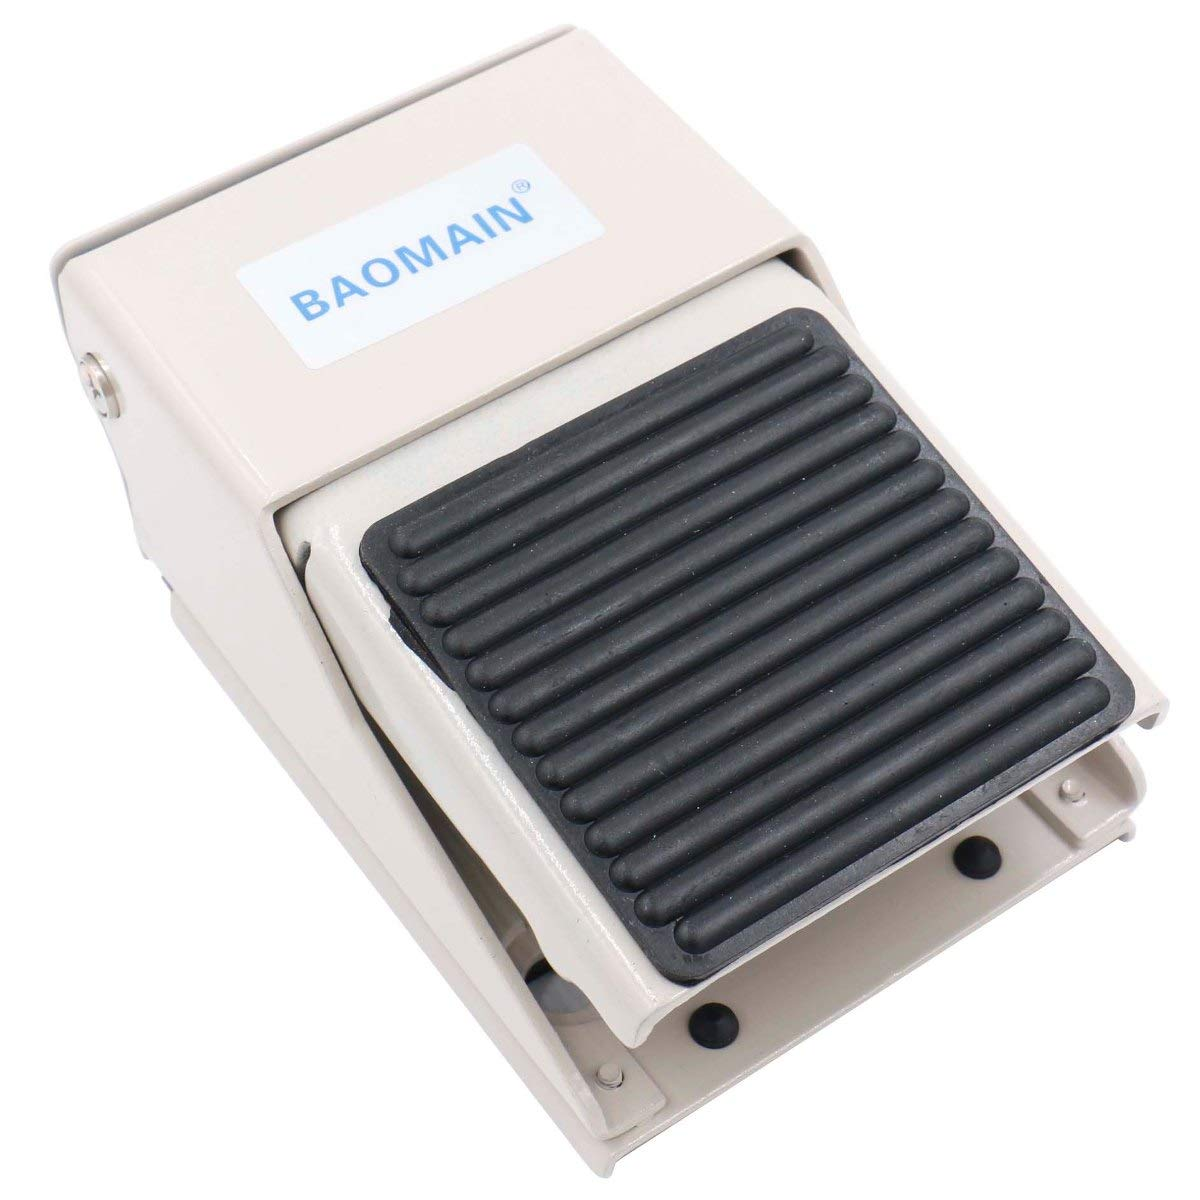 Baomain Pneumatic Foot Pedal Valve FV-320 Momentary 3 Way 2 Position 1/4''PT Threaded Rubber Nonslip Pressure Control